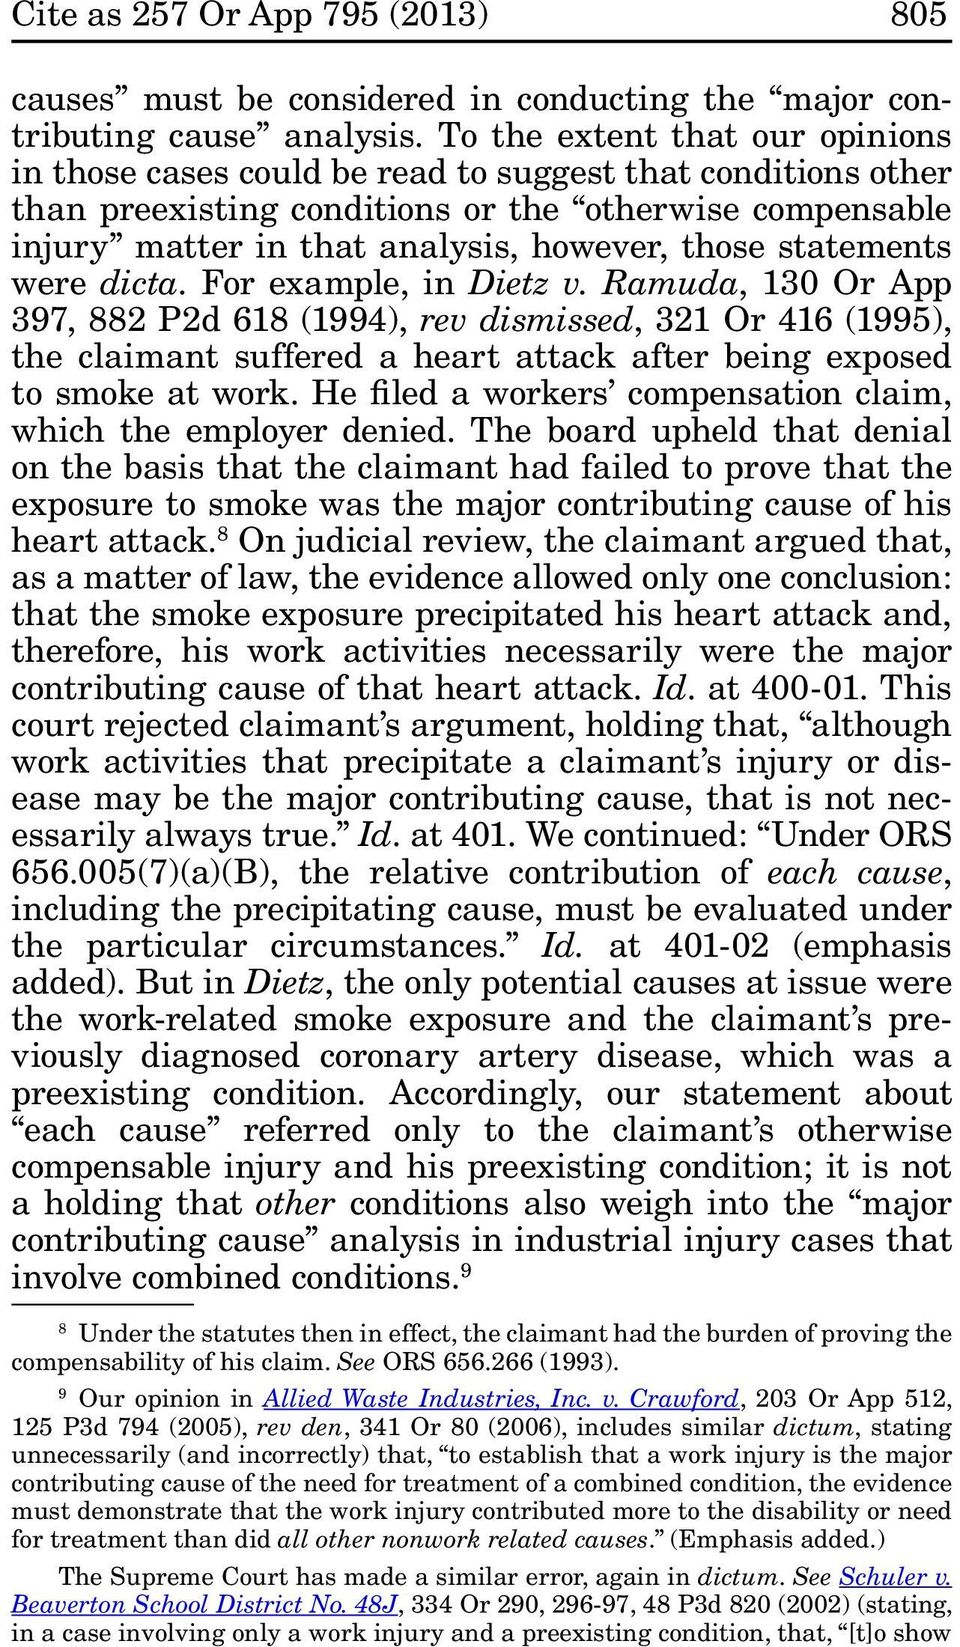 statements were dicta. For example, in Dietz v. Ramuda, 130 Or App 397, 882 P2d 618 (1994), rev dismissed, 321 Or 416 (1995), the claimant suffered a heart attack after being exposed to smoke at work.